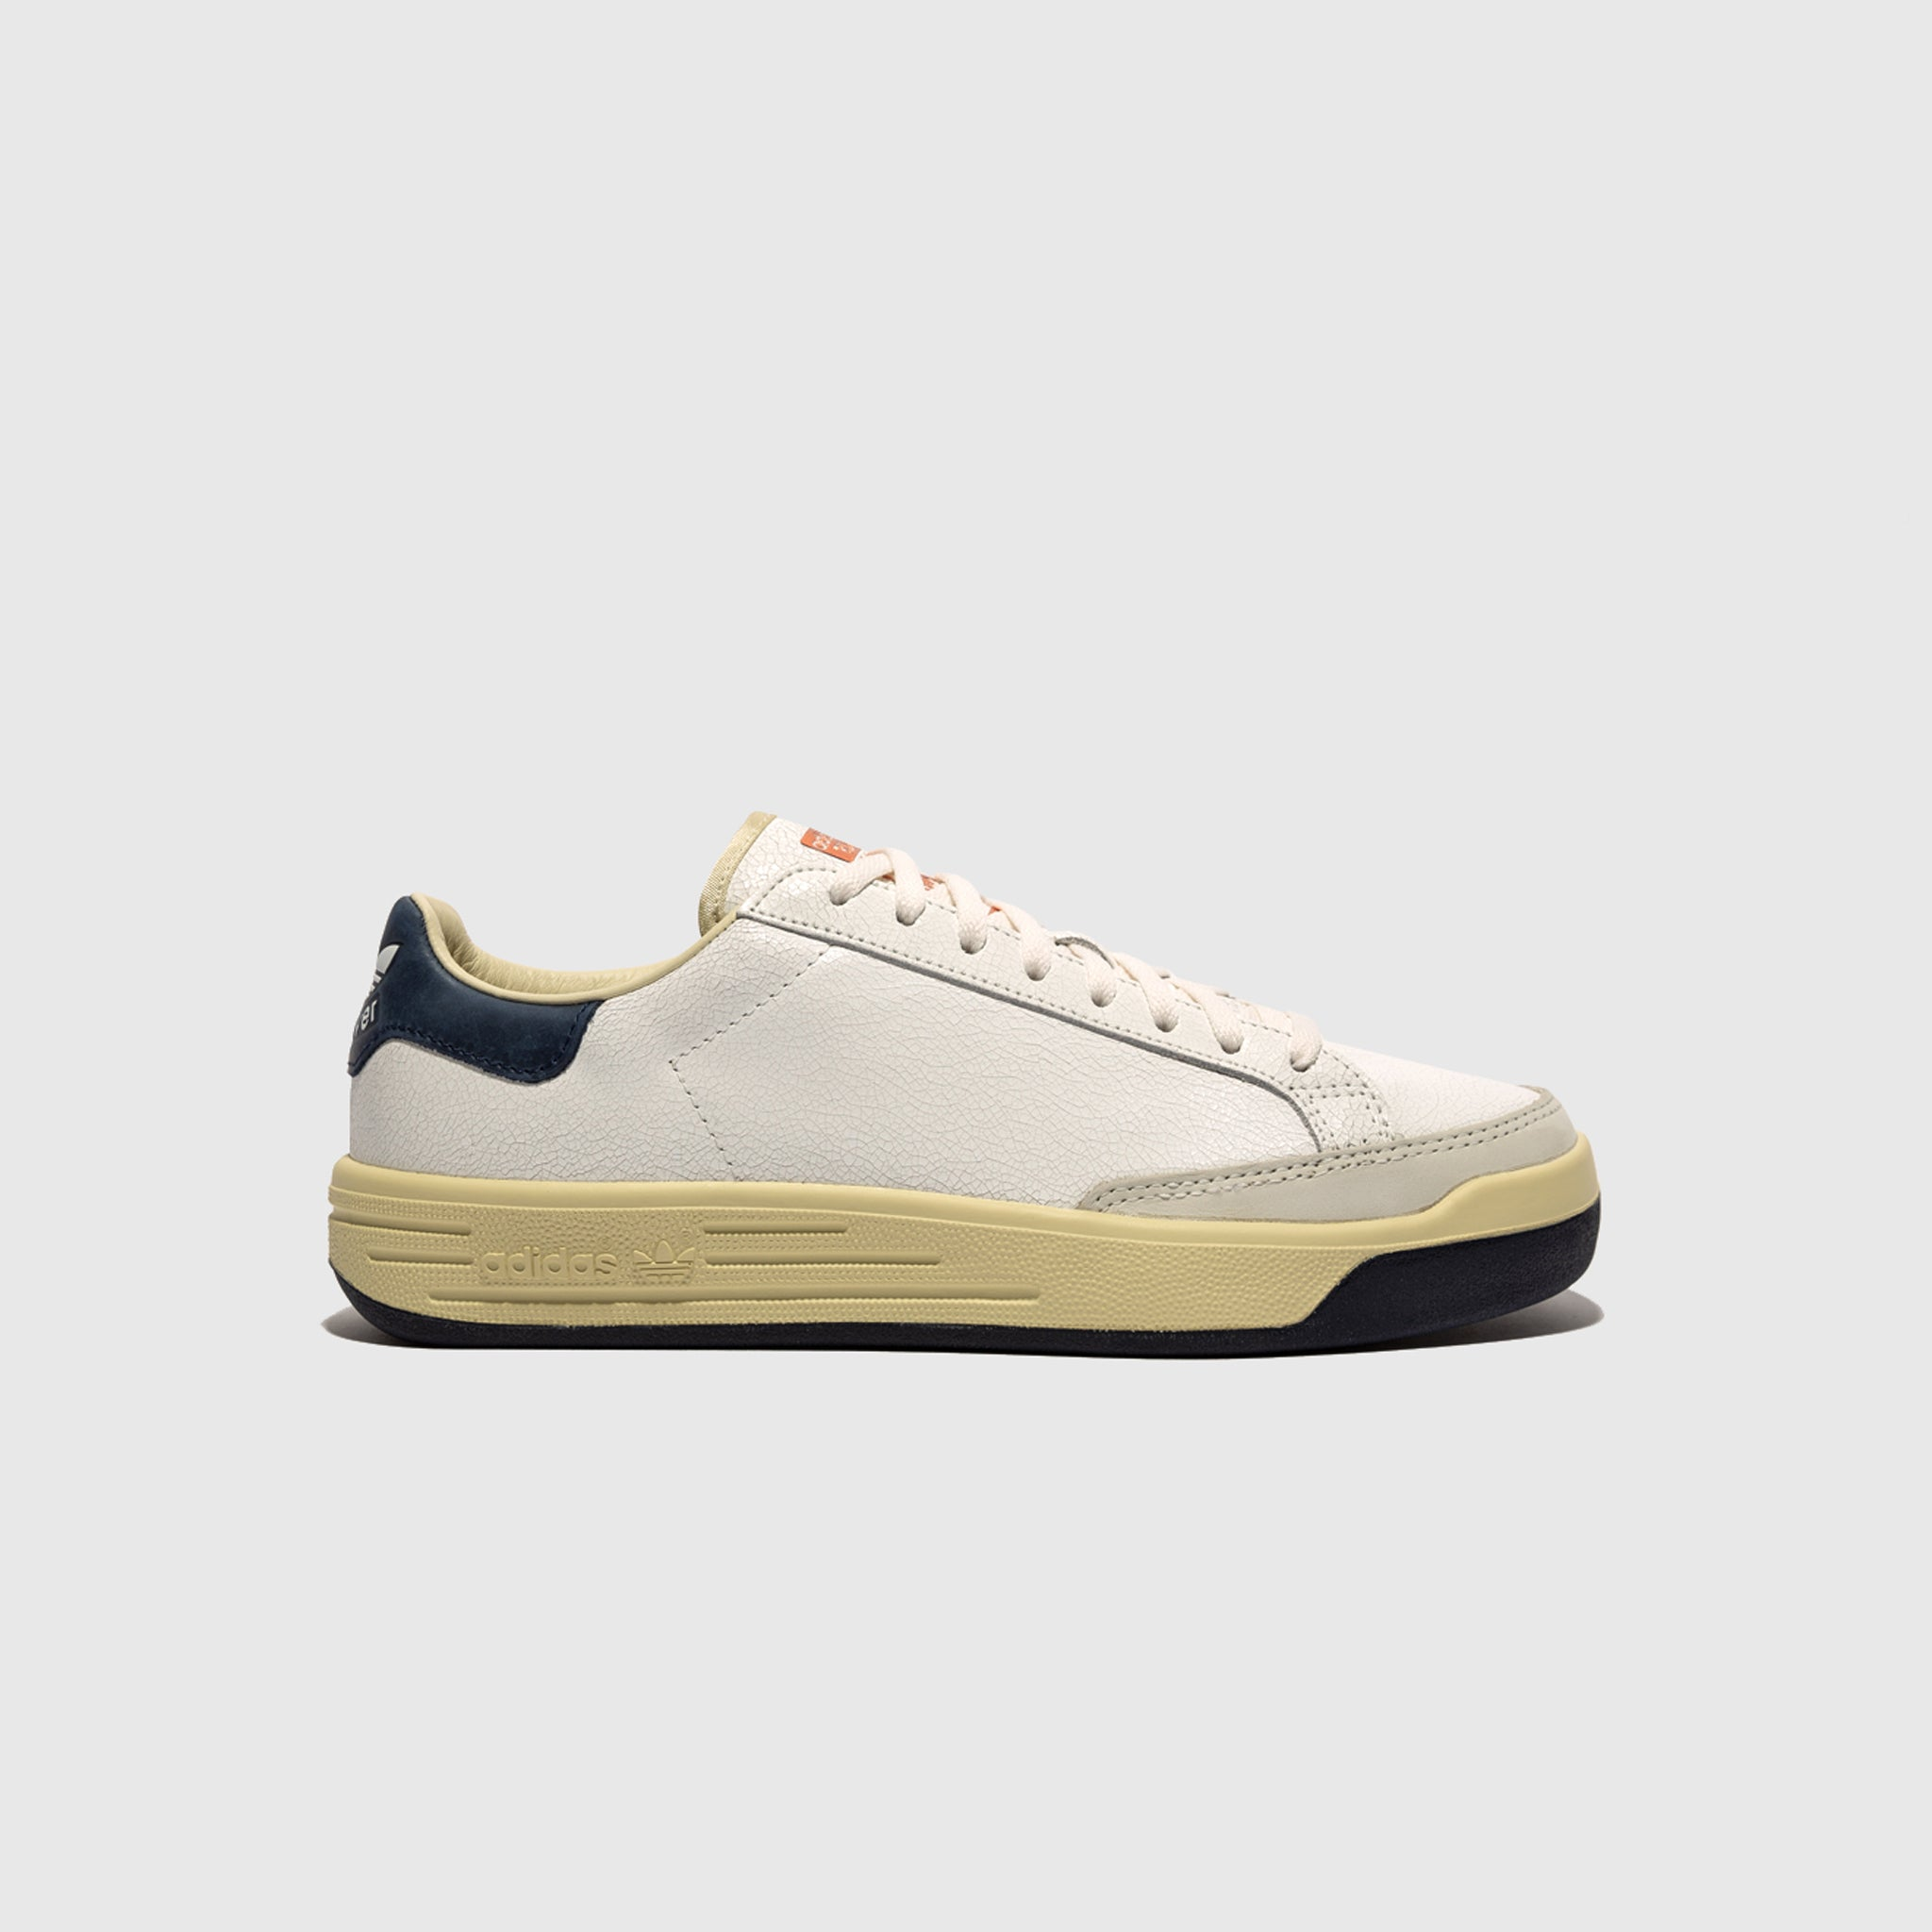 "ADIDAS CONSORTIUM ROD LAVER ""LEATHER PACK"" (Crackled)"